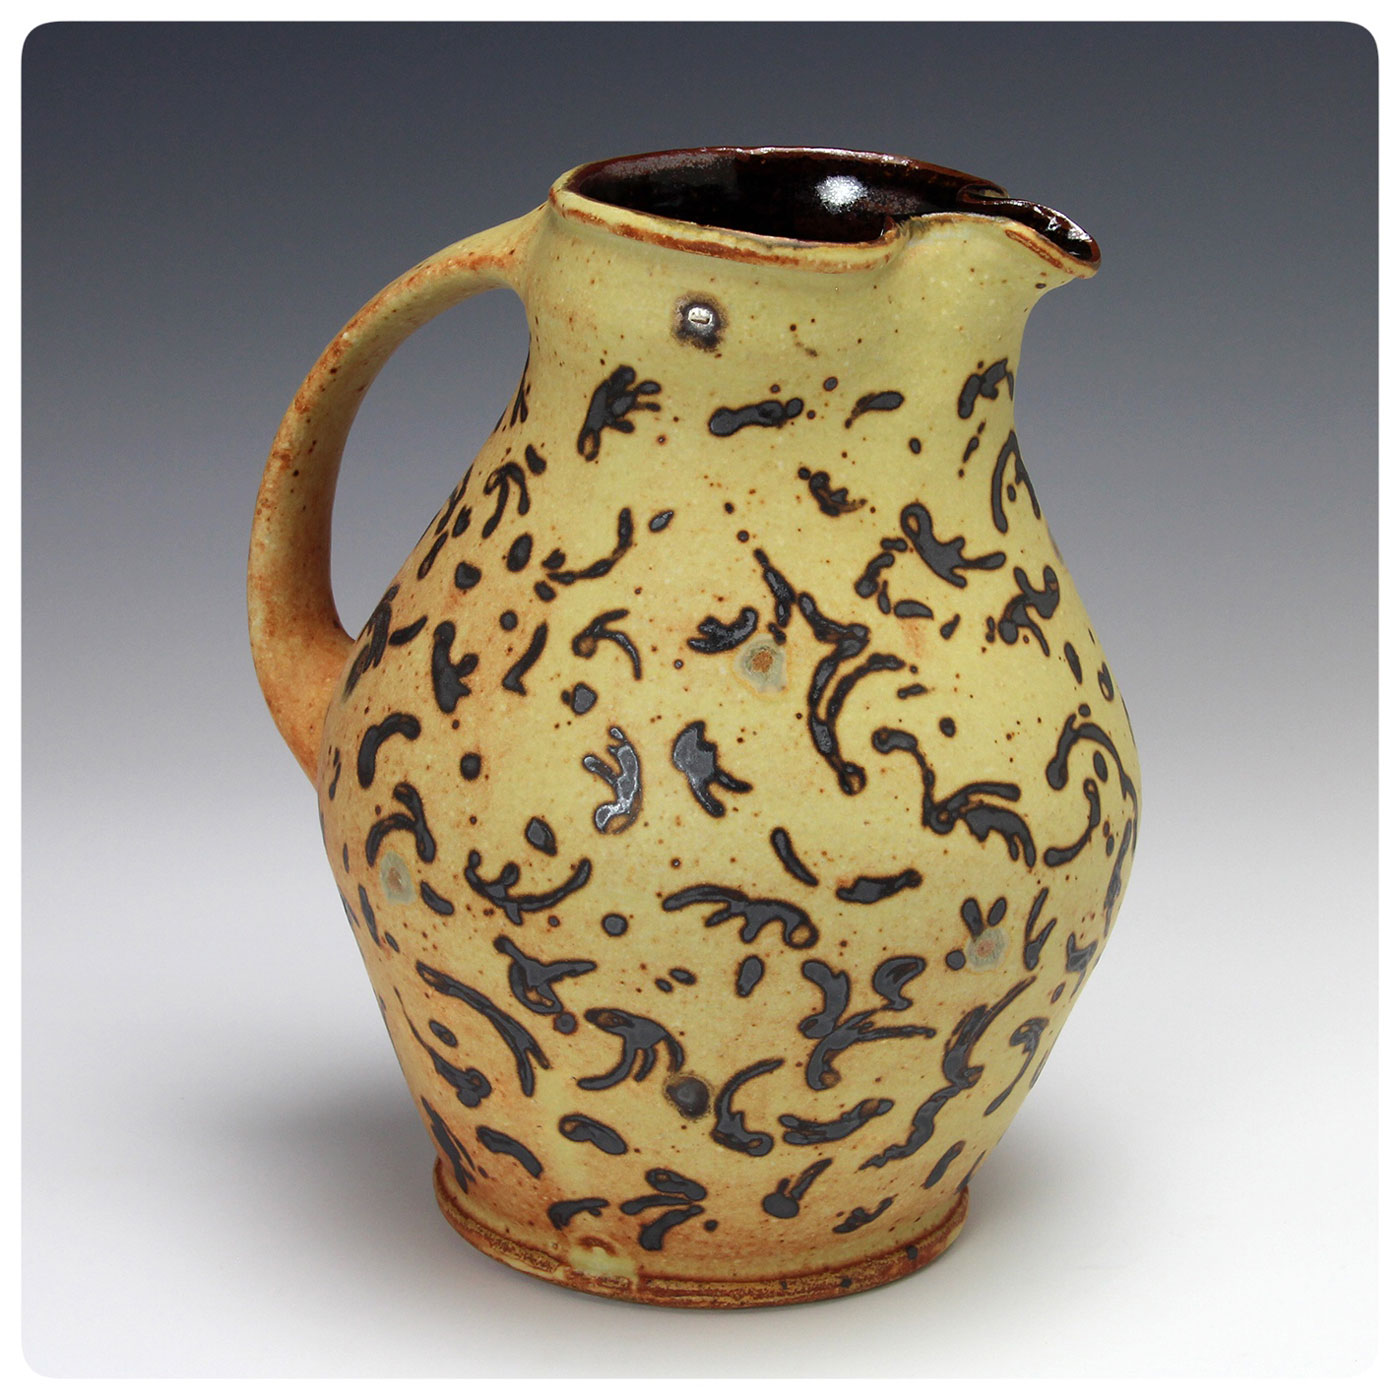 Studio Pottery Pitcher made by Bruce Gholson, Bulldog Pottery, Seagrove, North Carolina